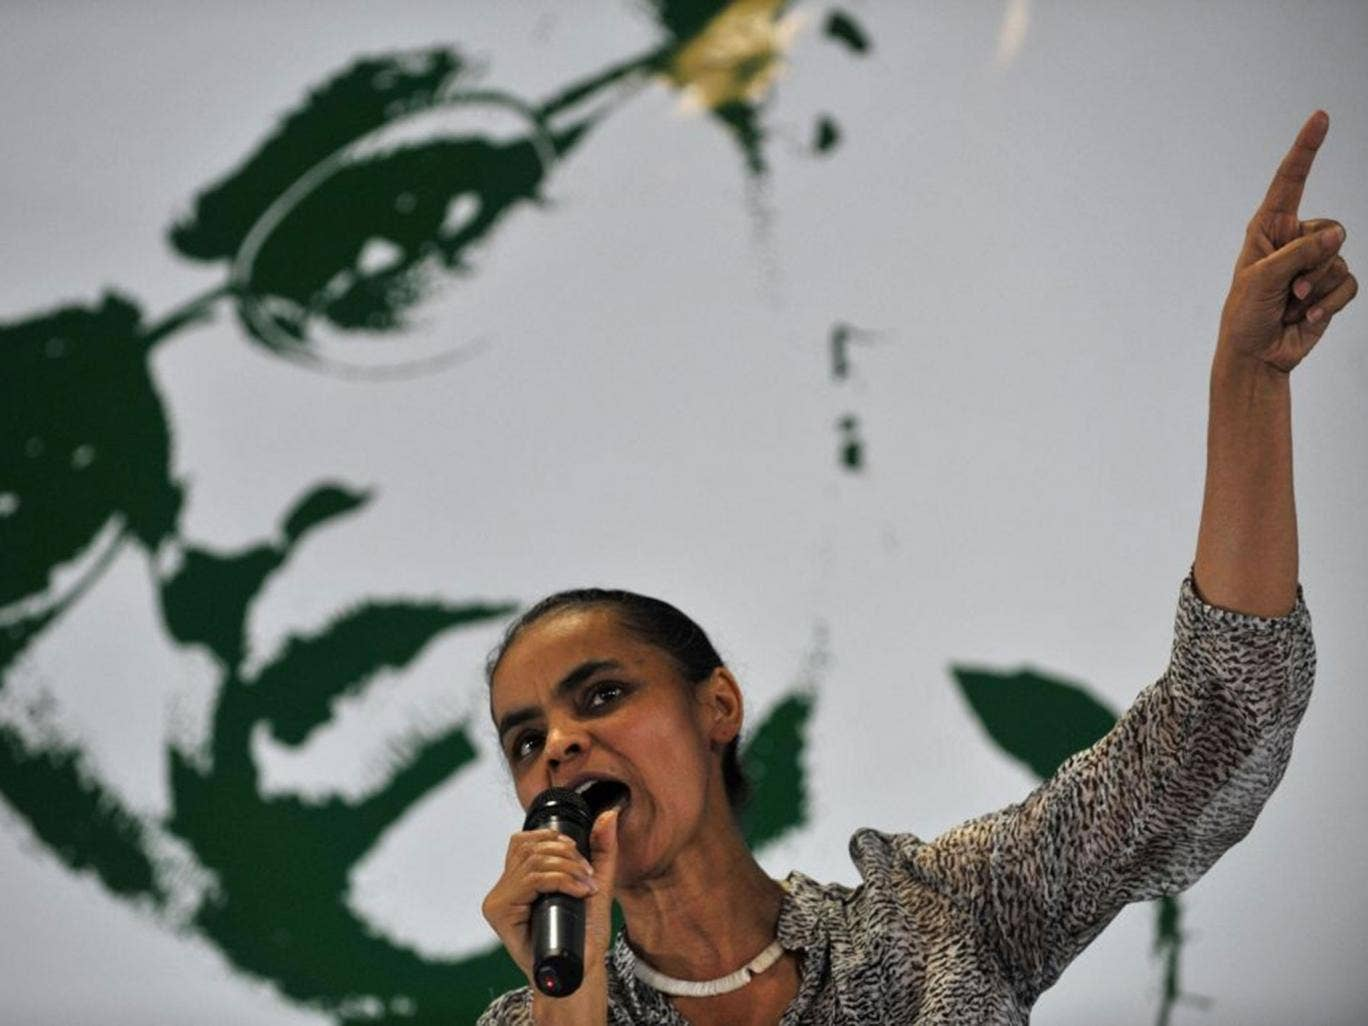 Marina Silva served as Environment Minister under the previous administration and is known for her religious and environmental beliefs. She is polling in second place for the October election